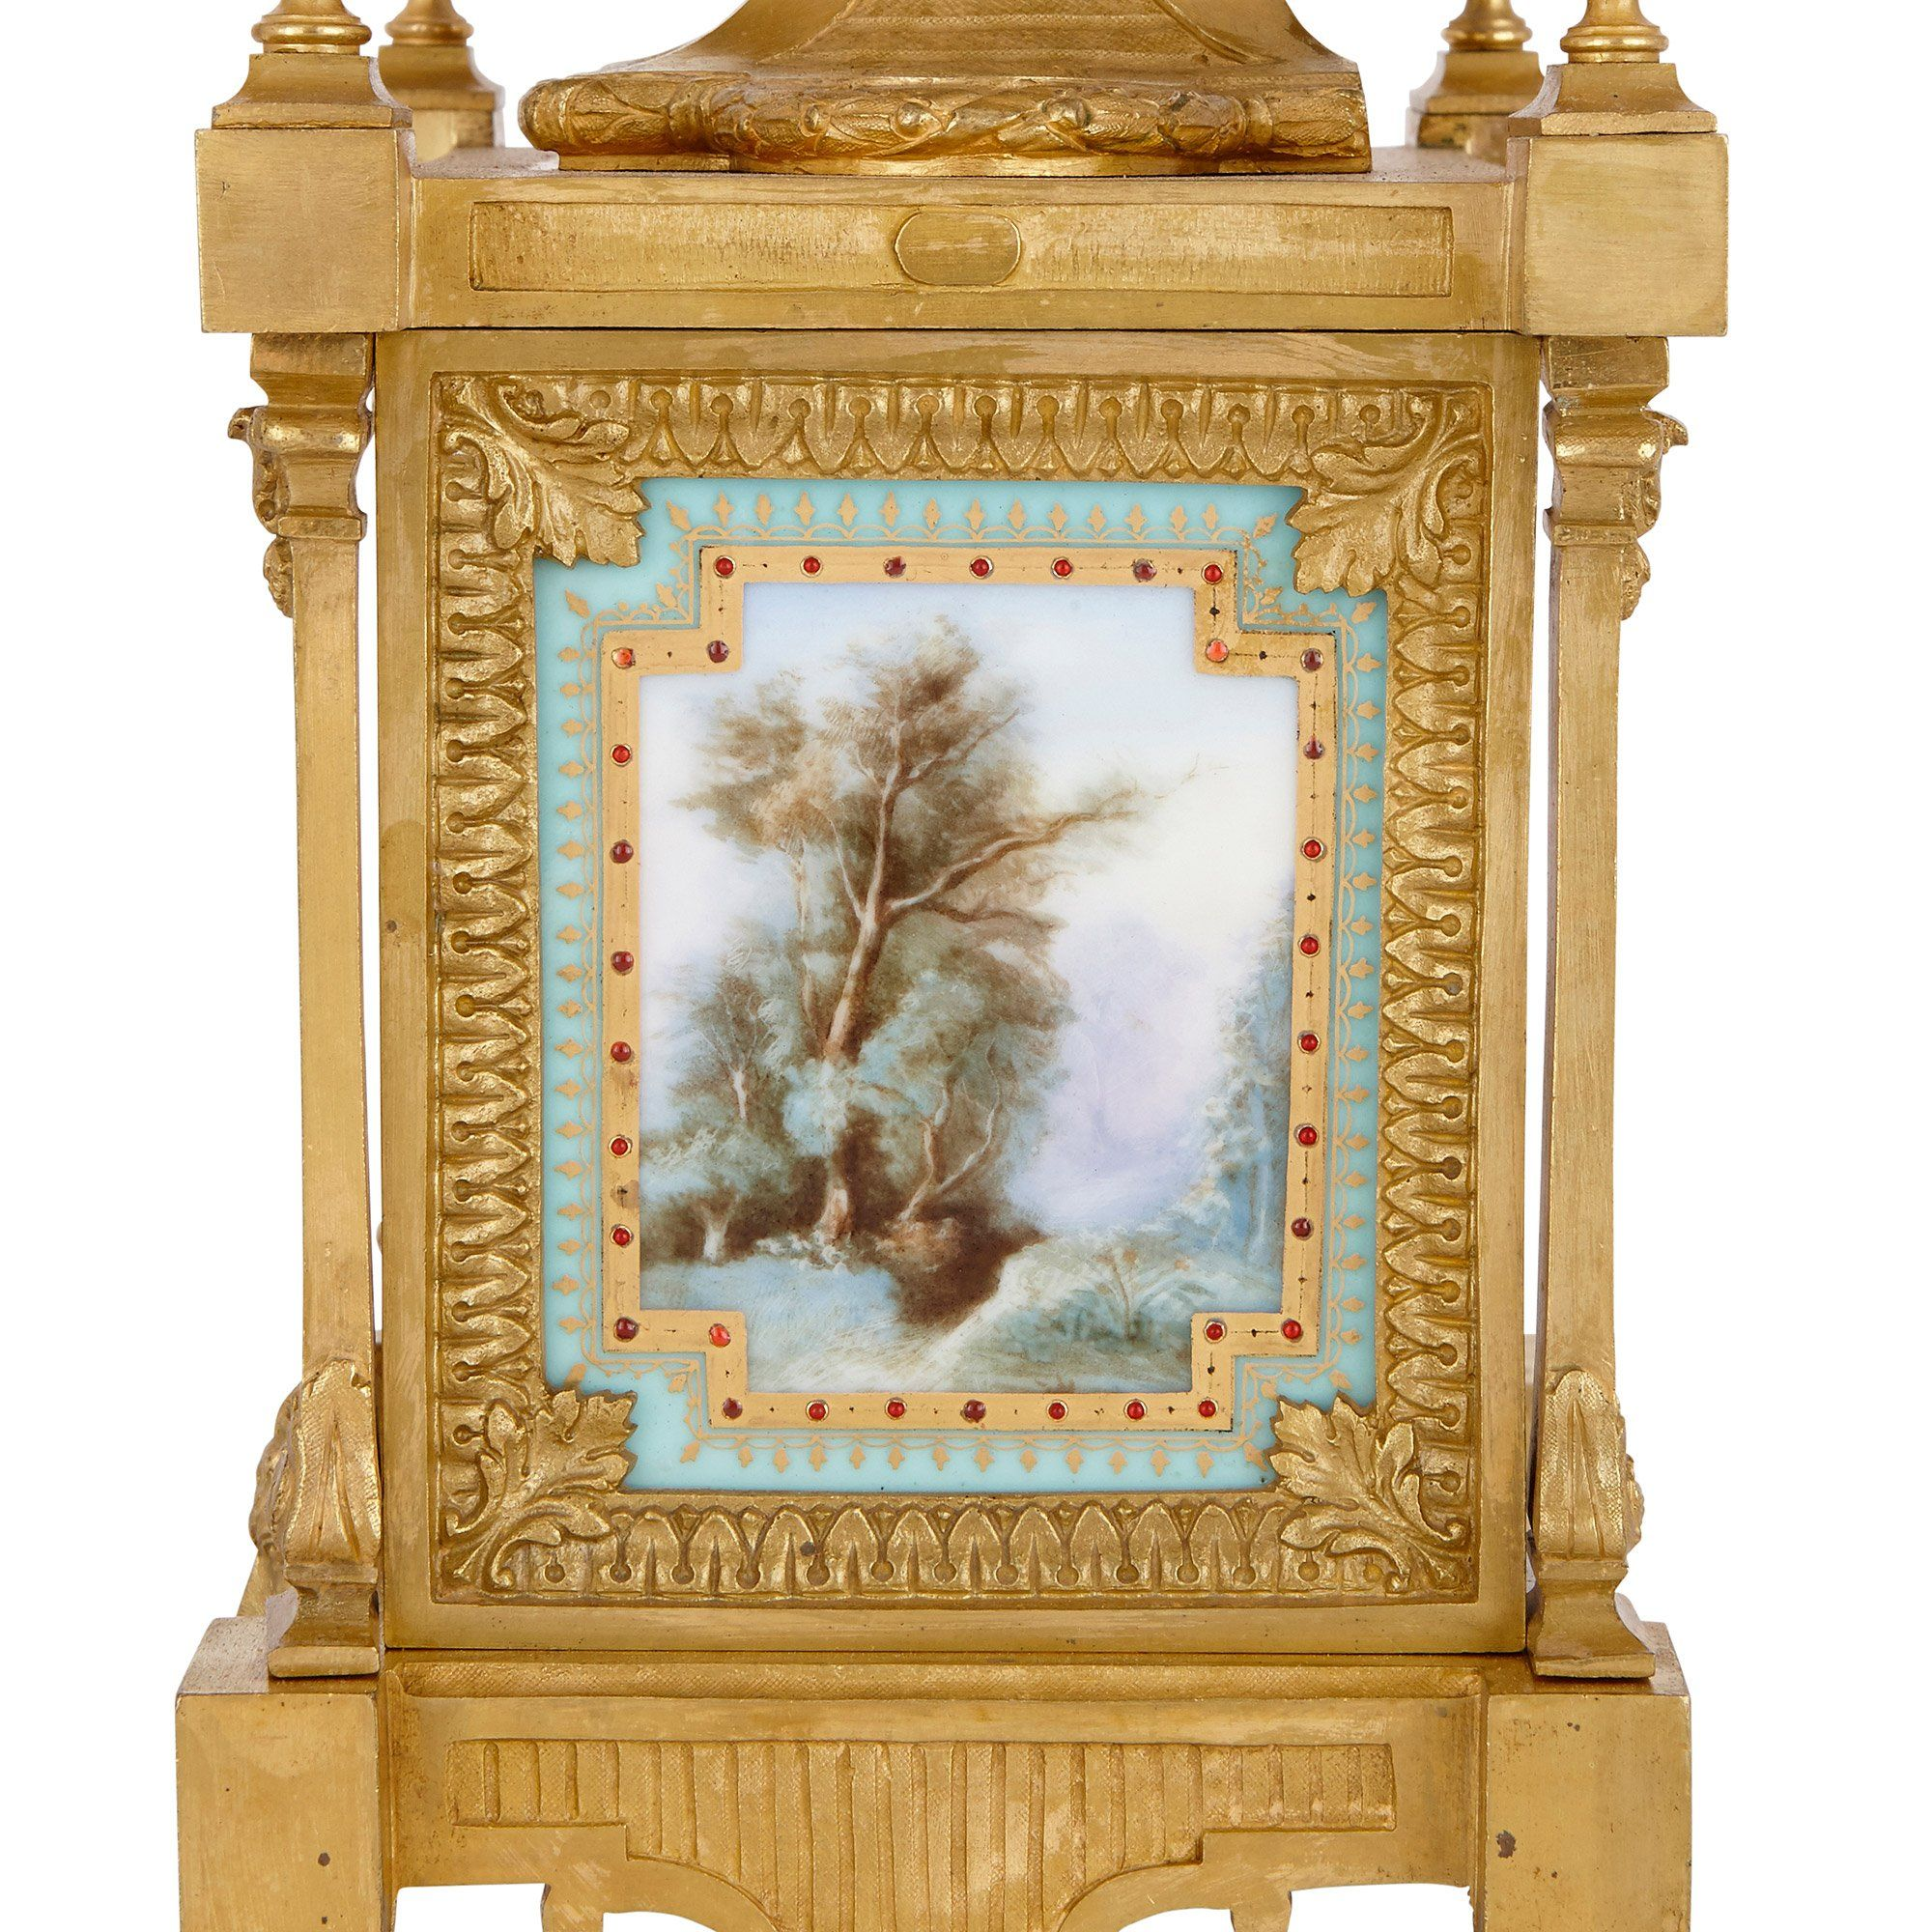 Antique ormolu and Sevres style porcelain mantel clock by ...